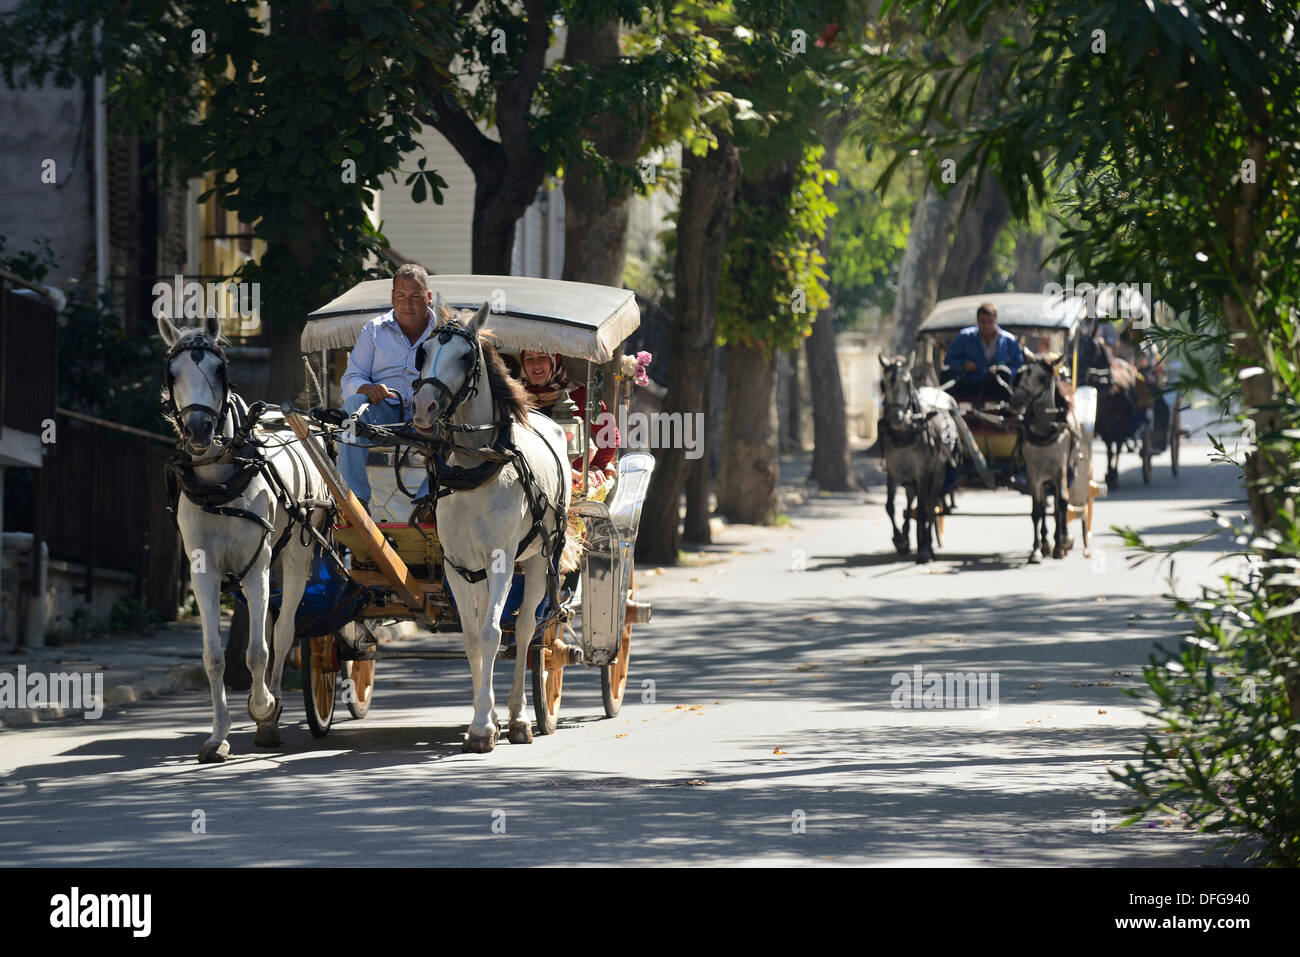 Horse-drawn carriages, Büyükada, Prince Islands, Istanbul, Asian side, Istanbul Province, Turkey - Stock Image